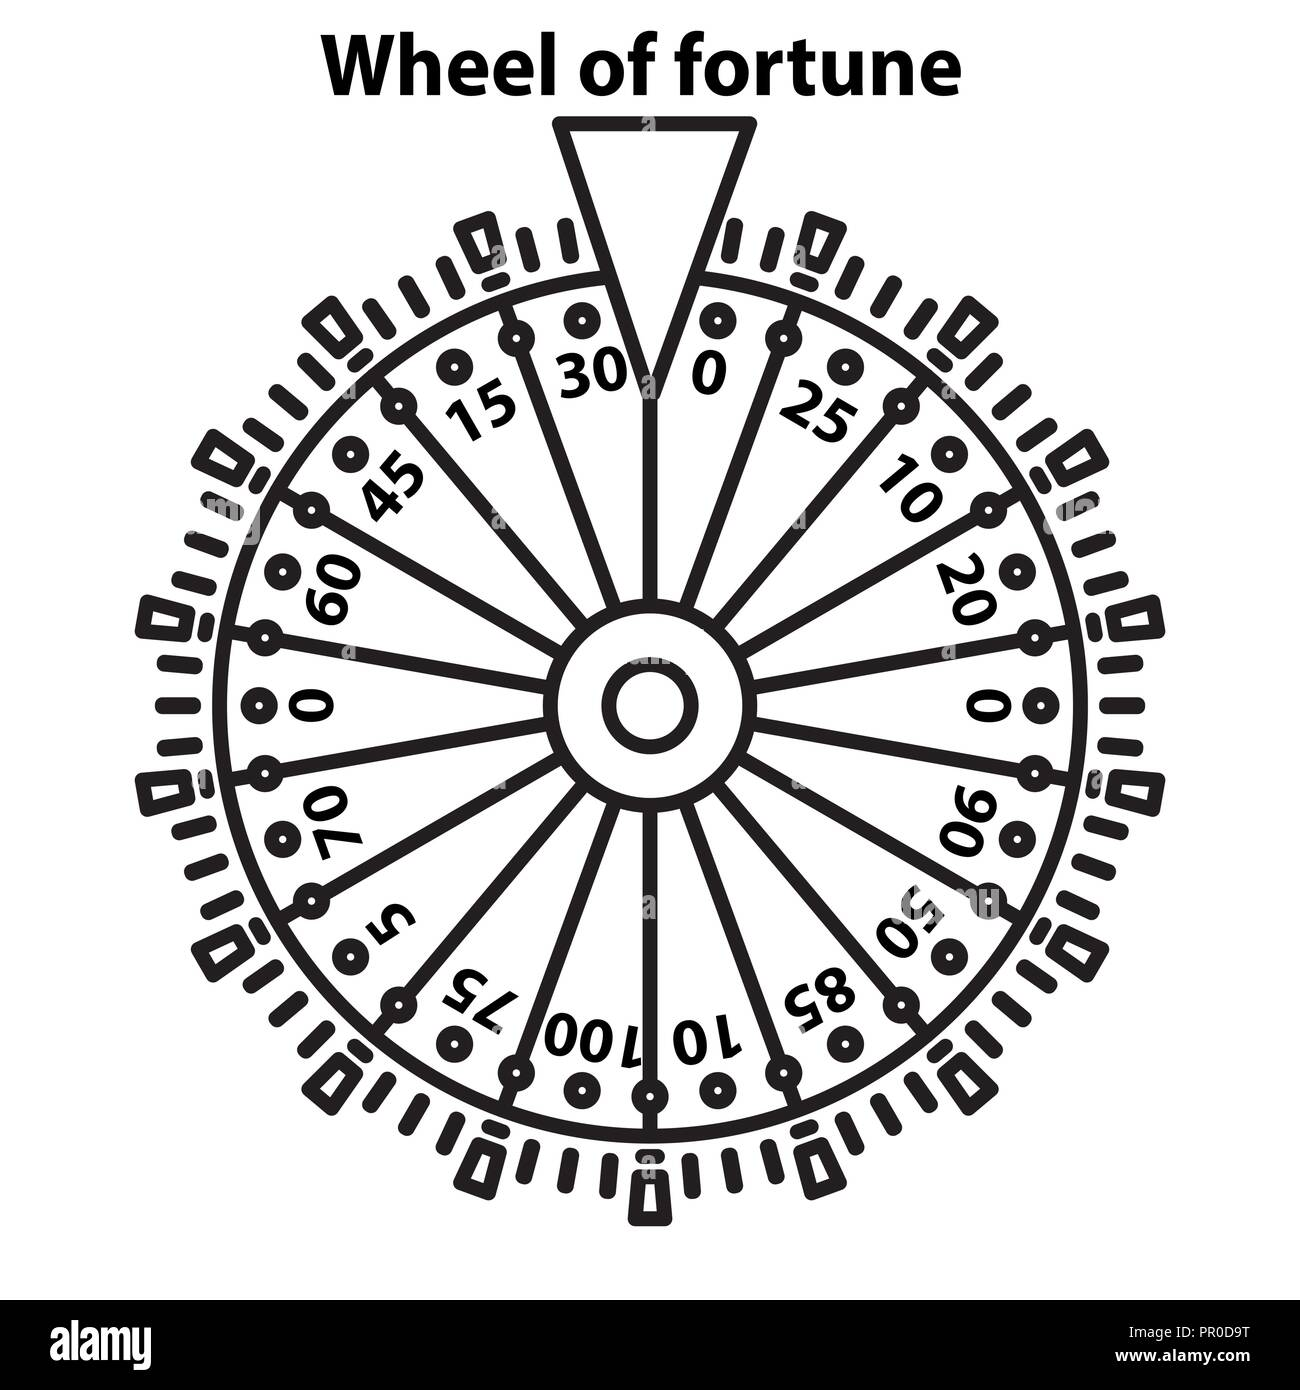 Wheel Of Fortune Stock Photos Wheel Of Fortune Stock Images Alamy